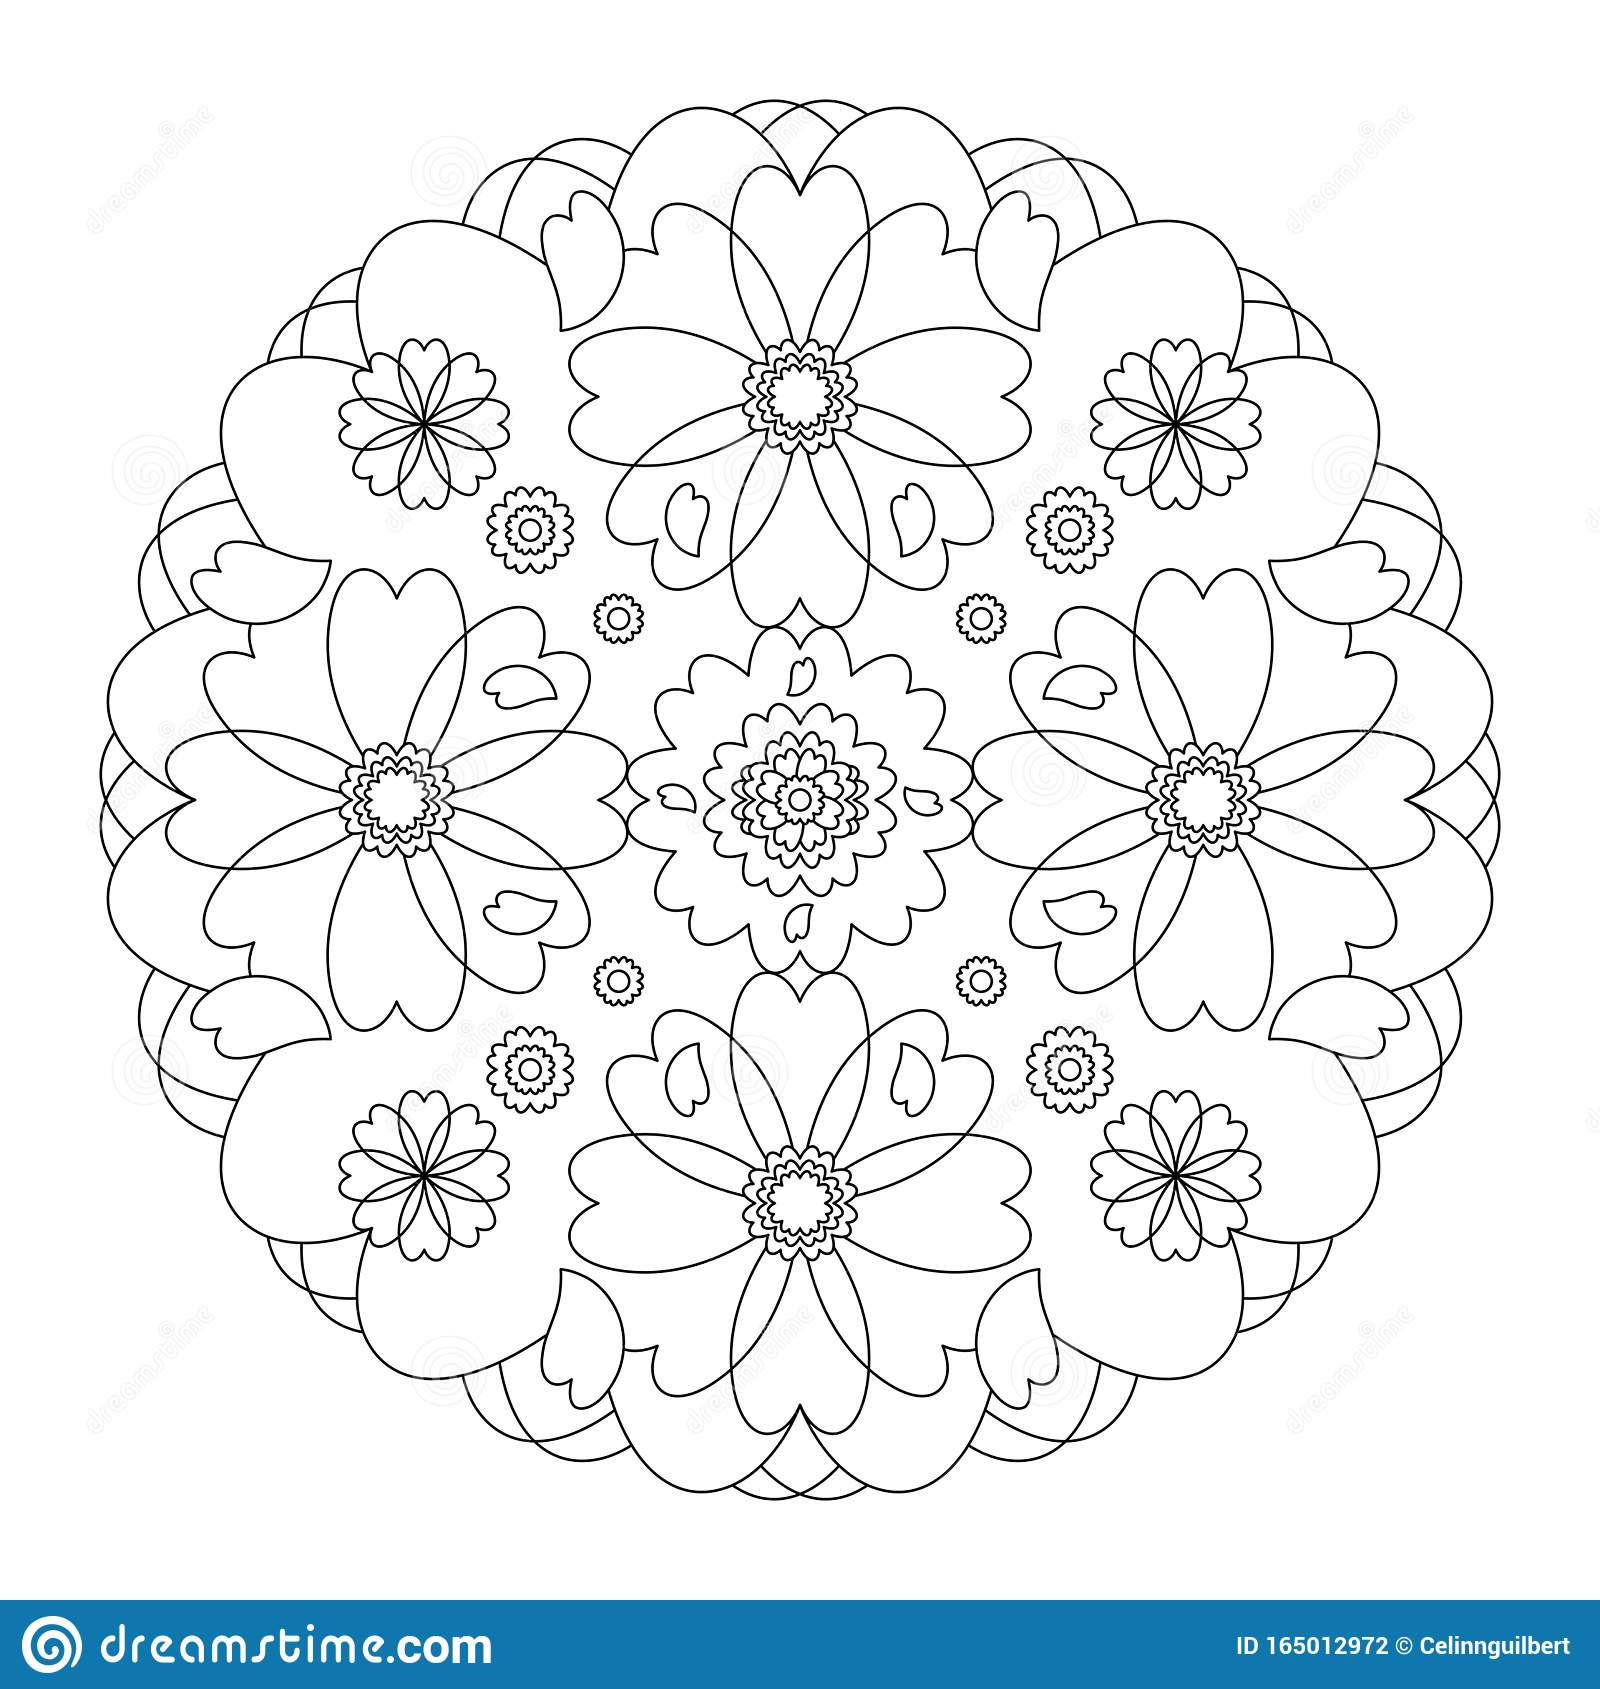 Mandala Coloring Page Hearts Mandala Coloring Page Illustration Vector Black And White Art Therapy Anti Stress Coloring Page Stock Vector Illustration Of Buddhism Element 165012972